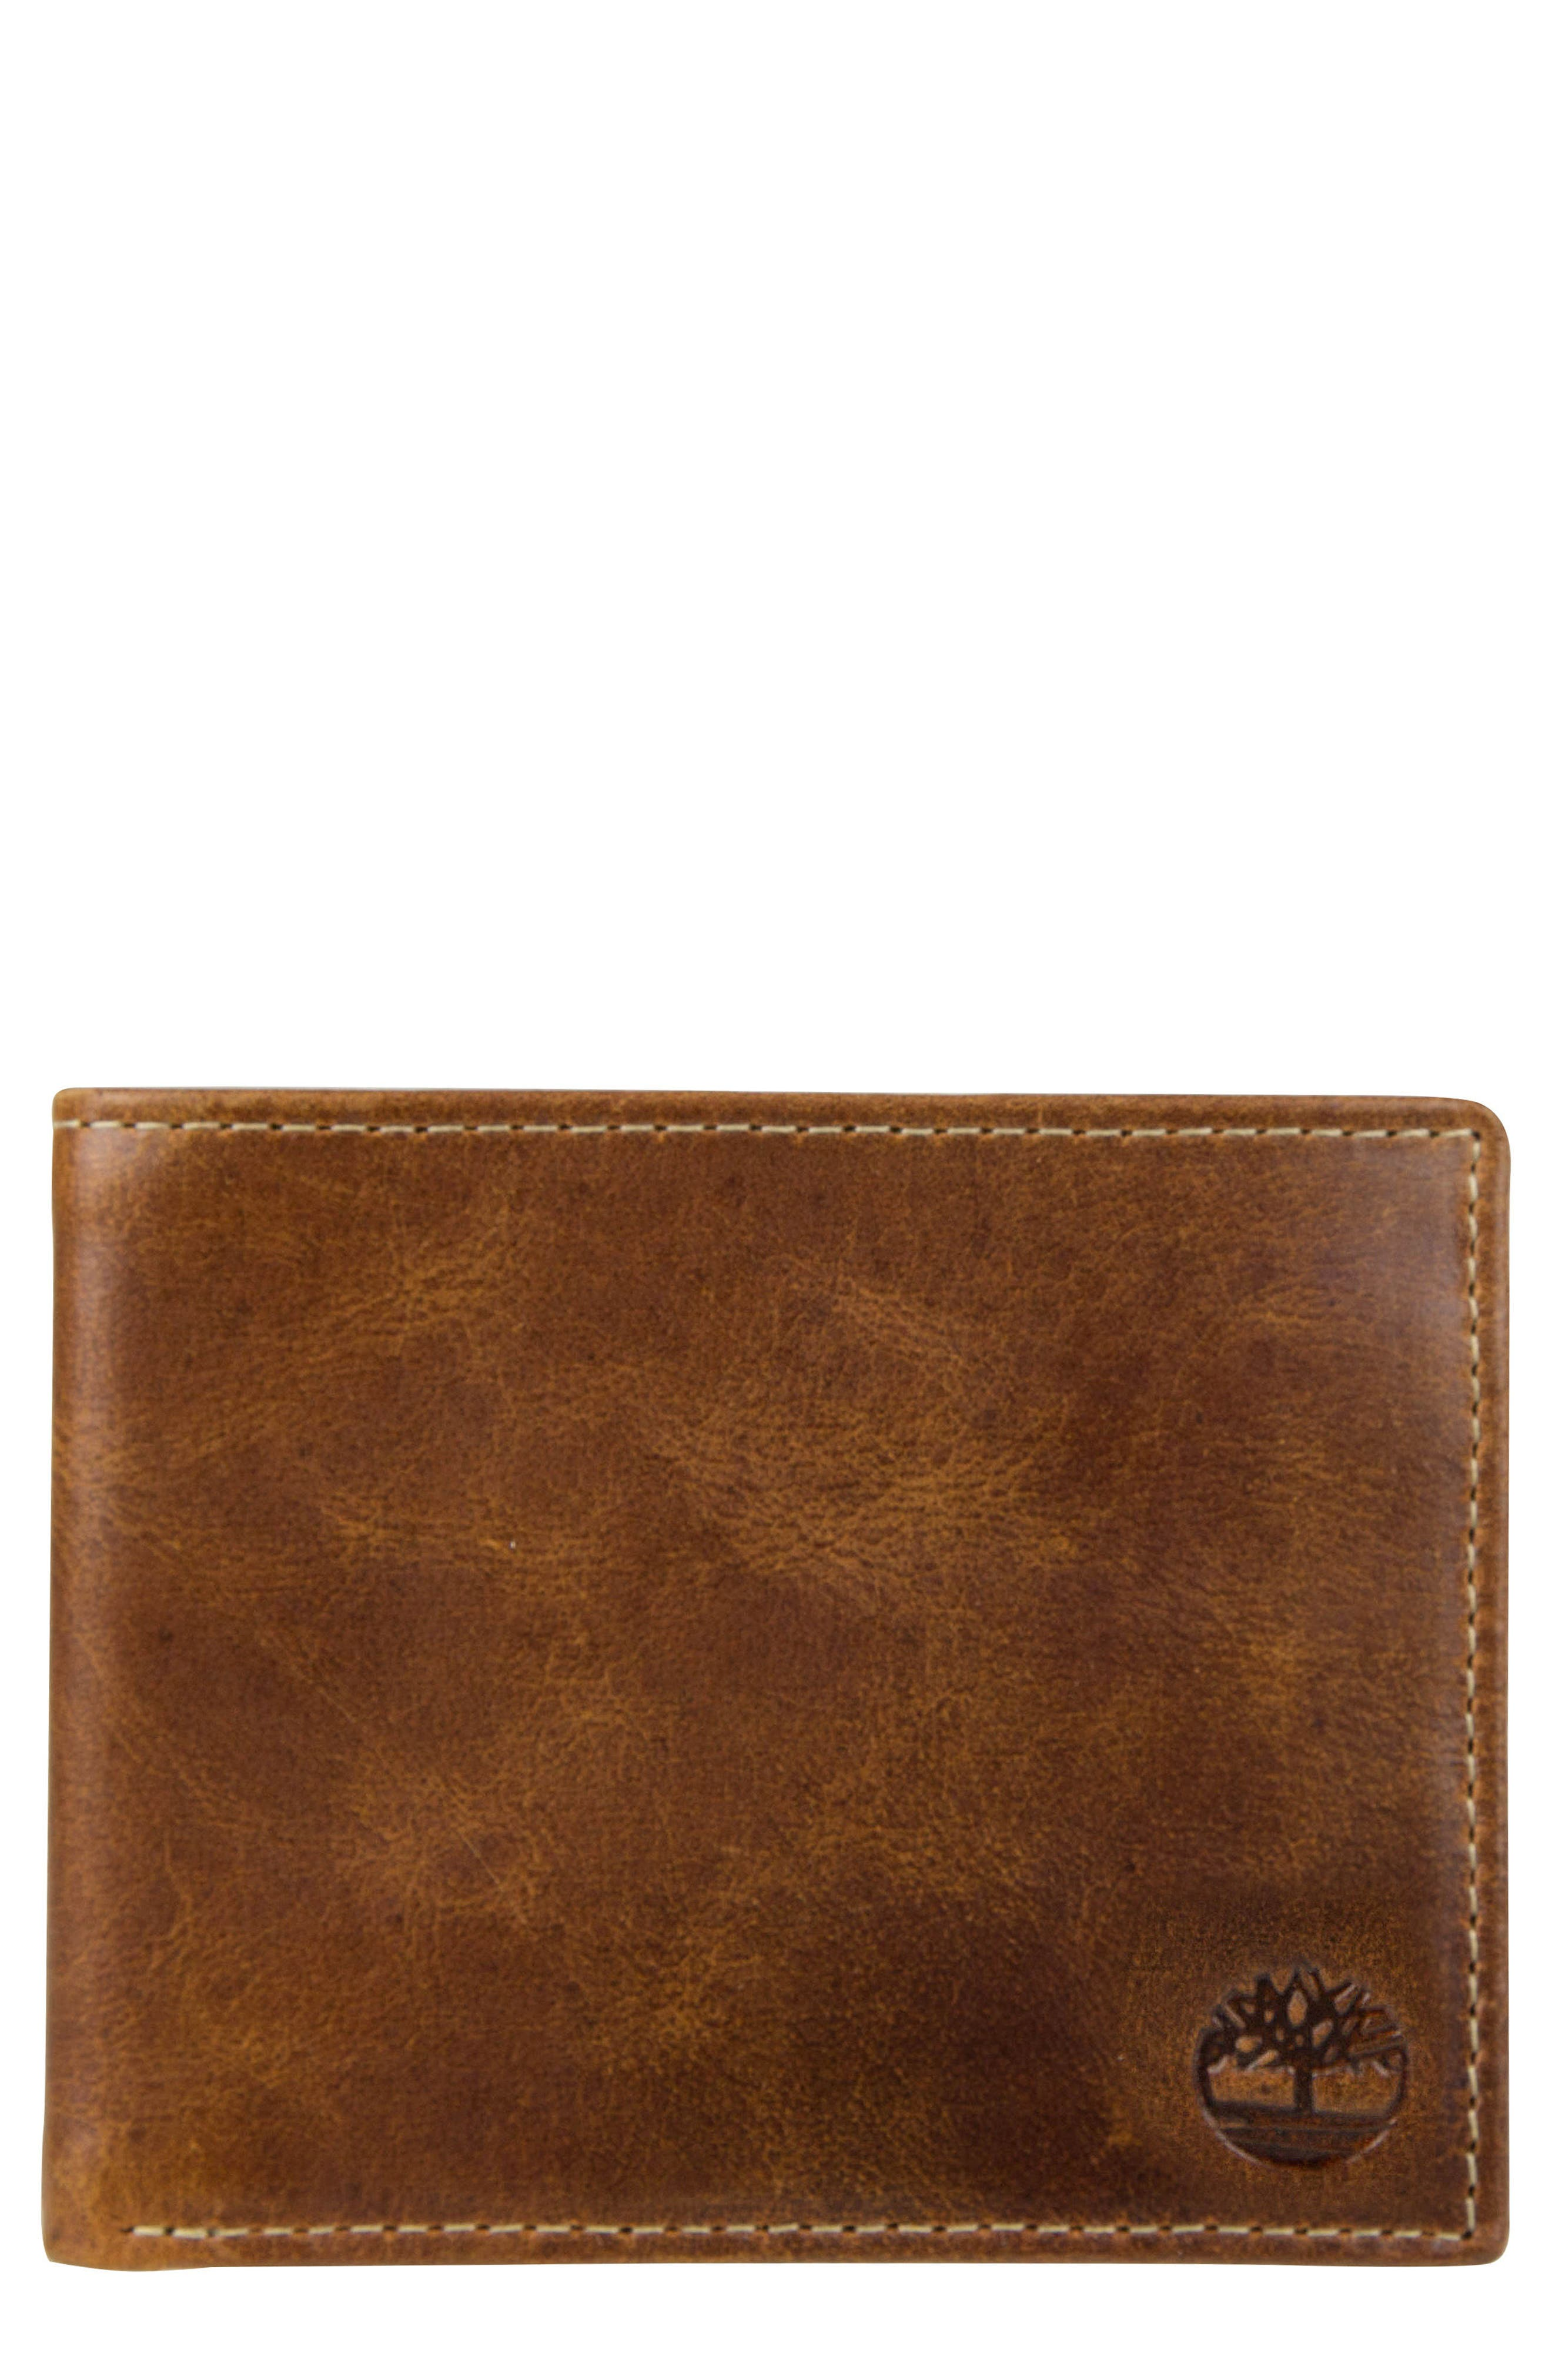 Leather Wallet,                             Main thumbnail 1, color,                             202